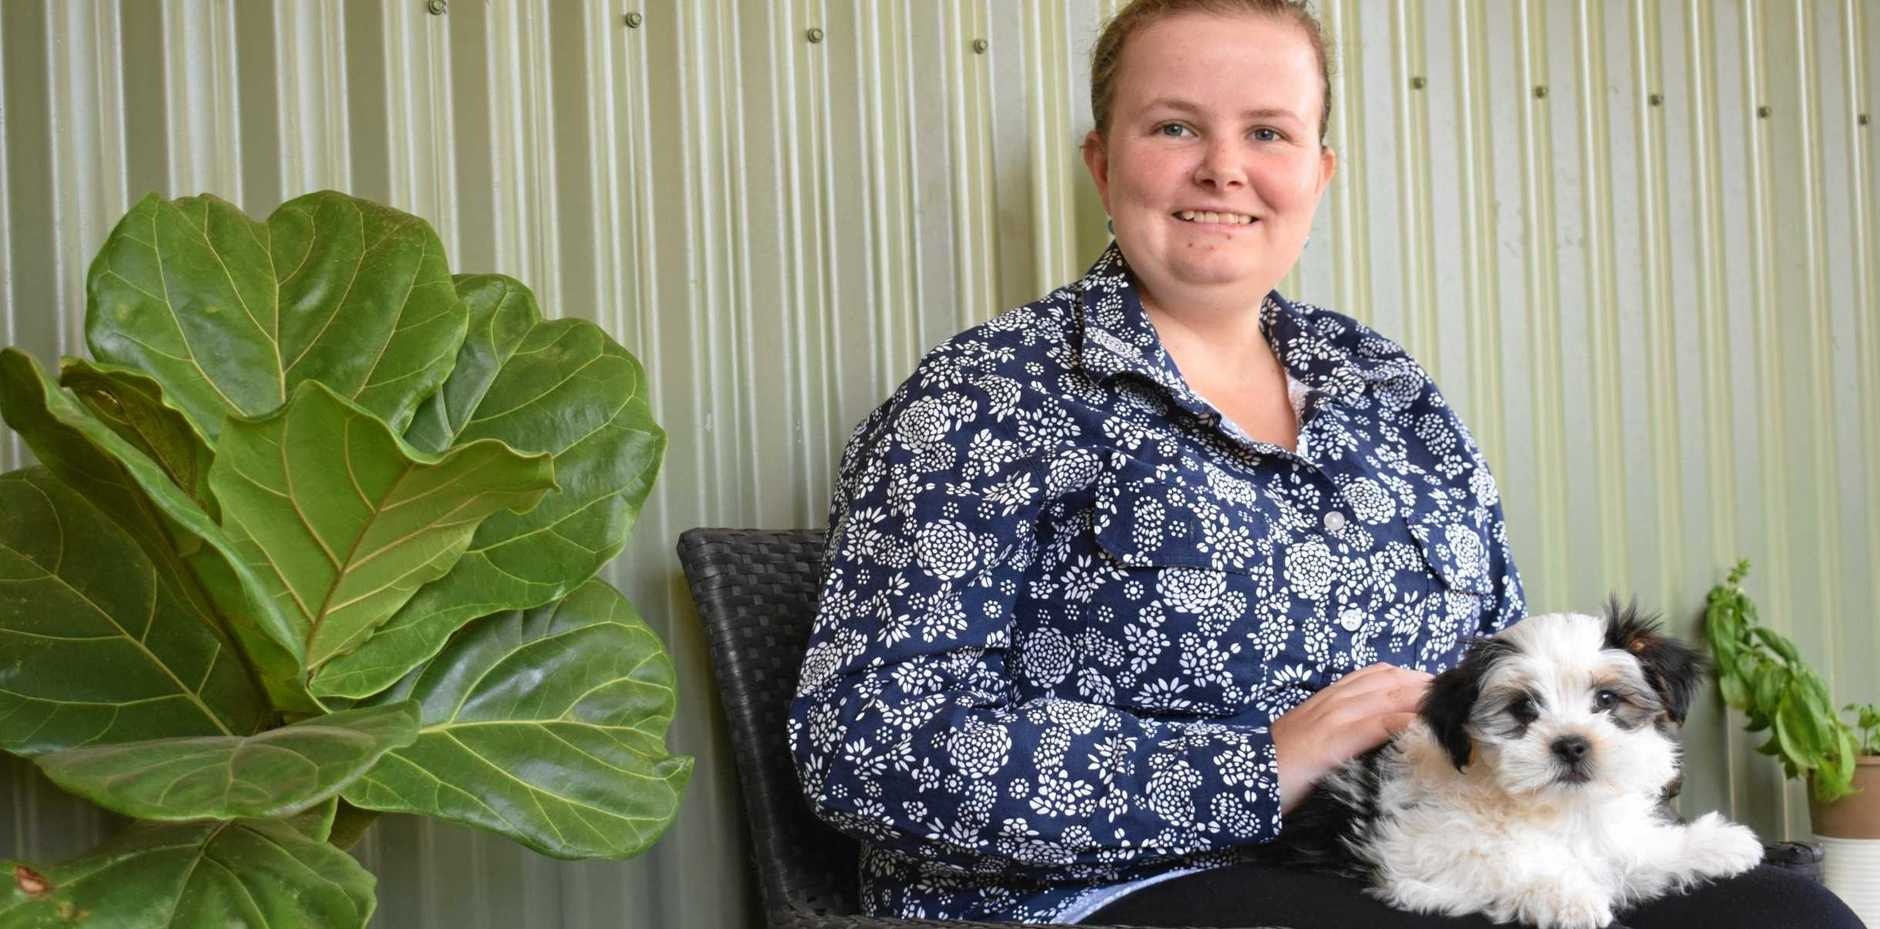 FIND A WAY: Hope Biltoft and her sweet new therapy puppy, Dexter. Hope is facing invasive surgery for brain cancer and her family is raising funds to get her a safer treatment under Charlie Teo.